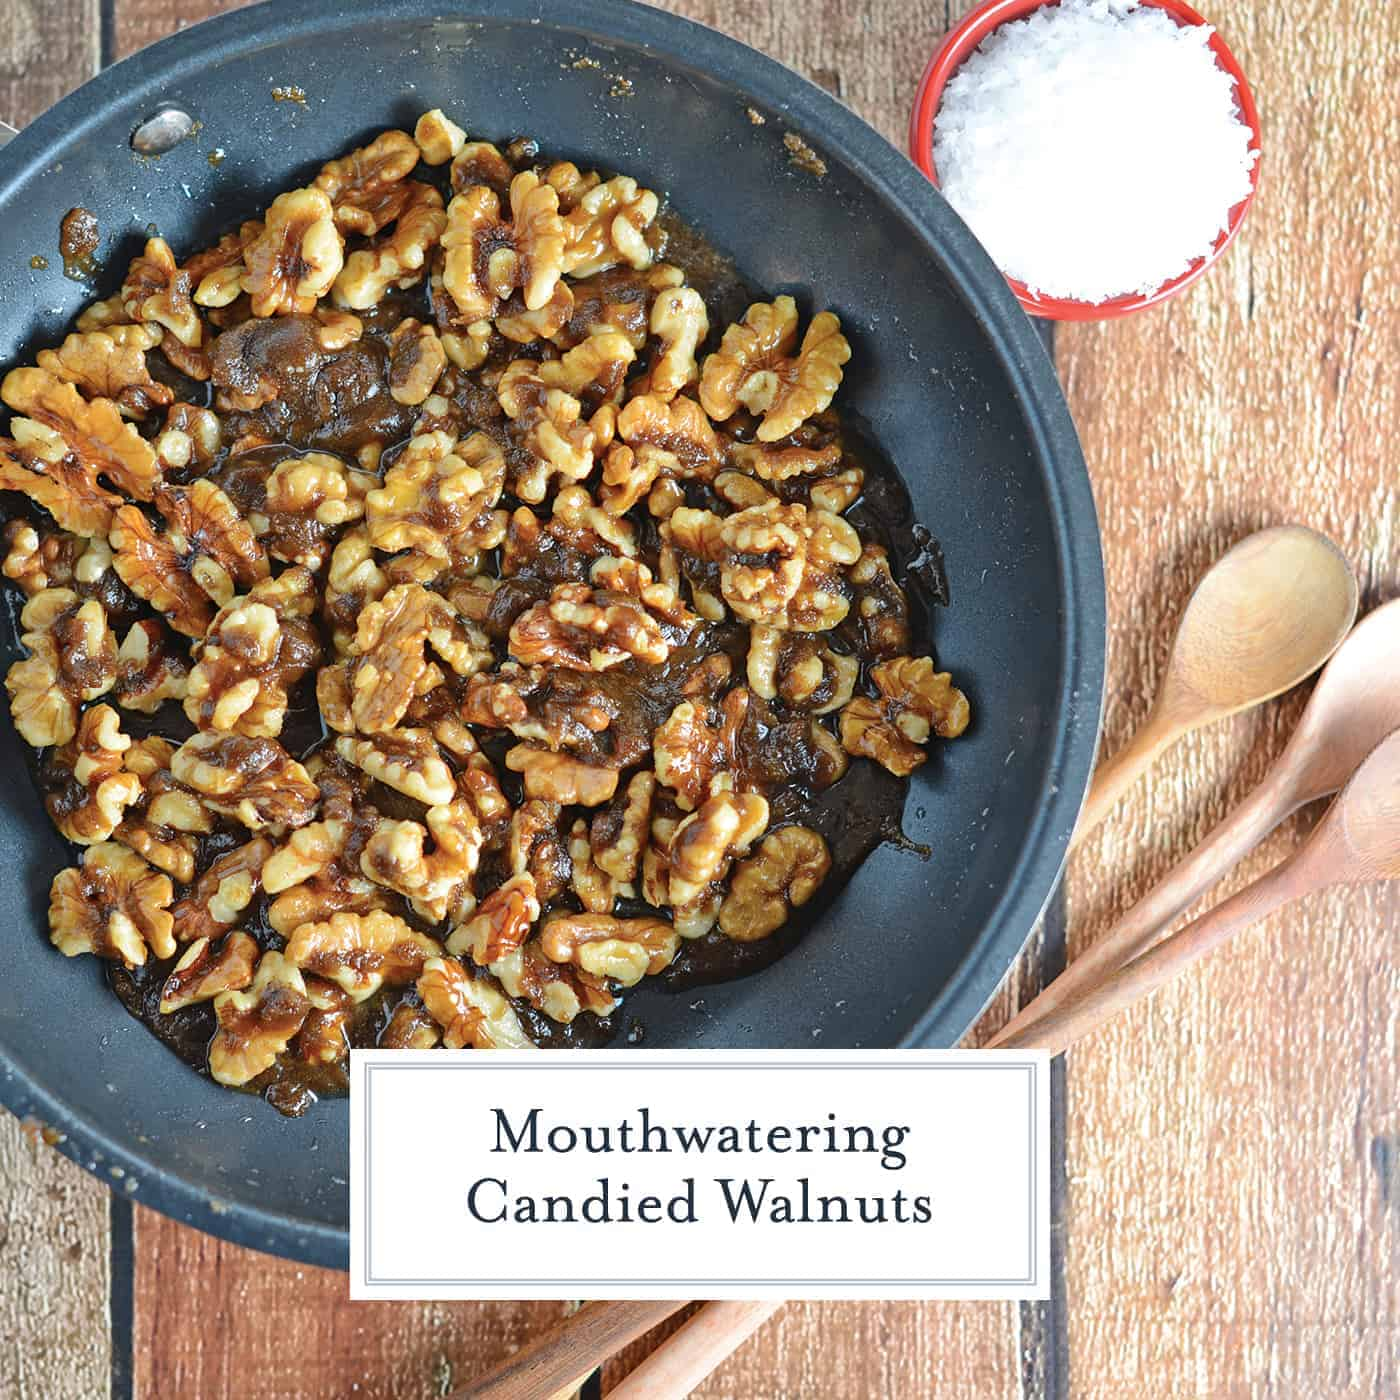 Candied walnuts are easy to make with just brown sugar, cinnamon and a pinch of salt. Add to any dessert, salad or more! #candiedwalnuts www.savoryexperiments.com